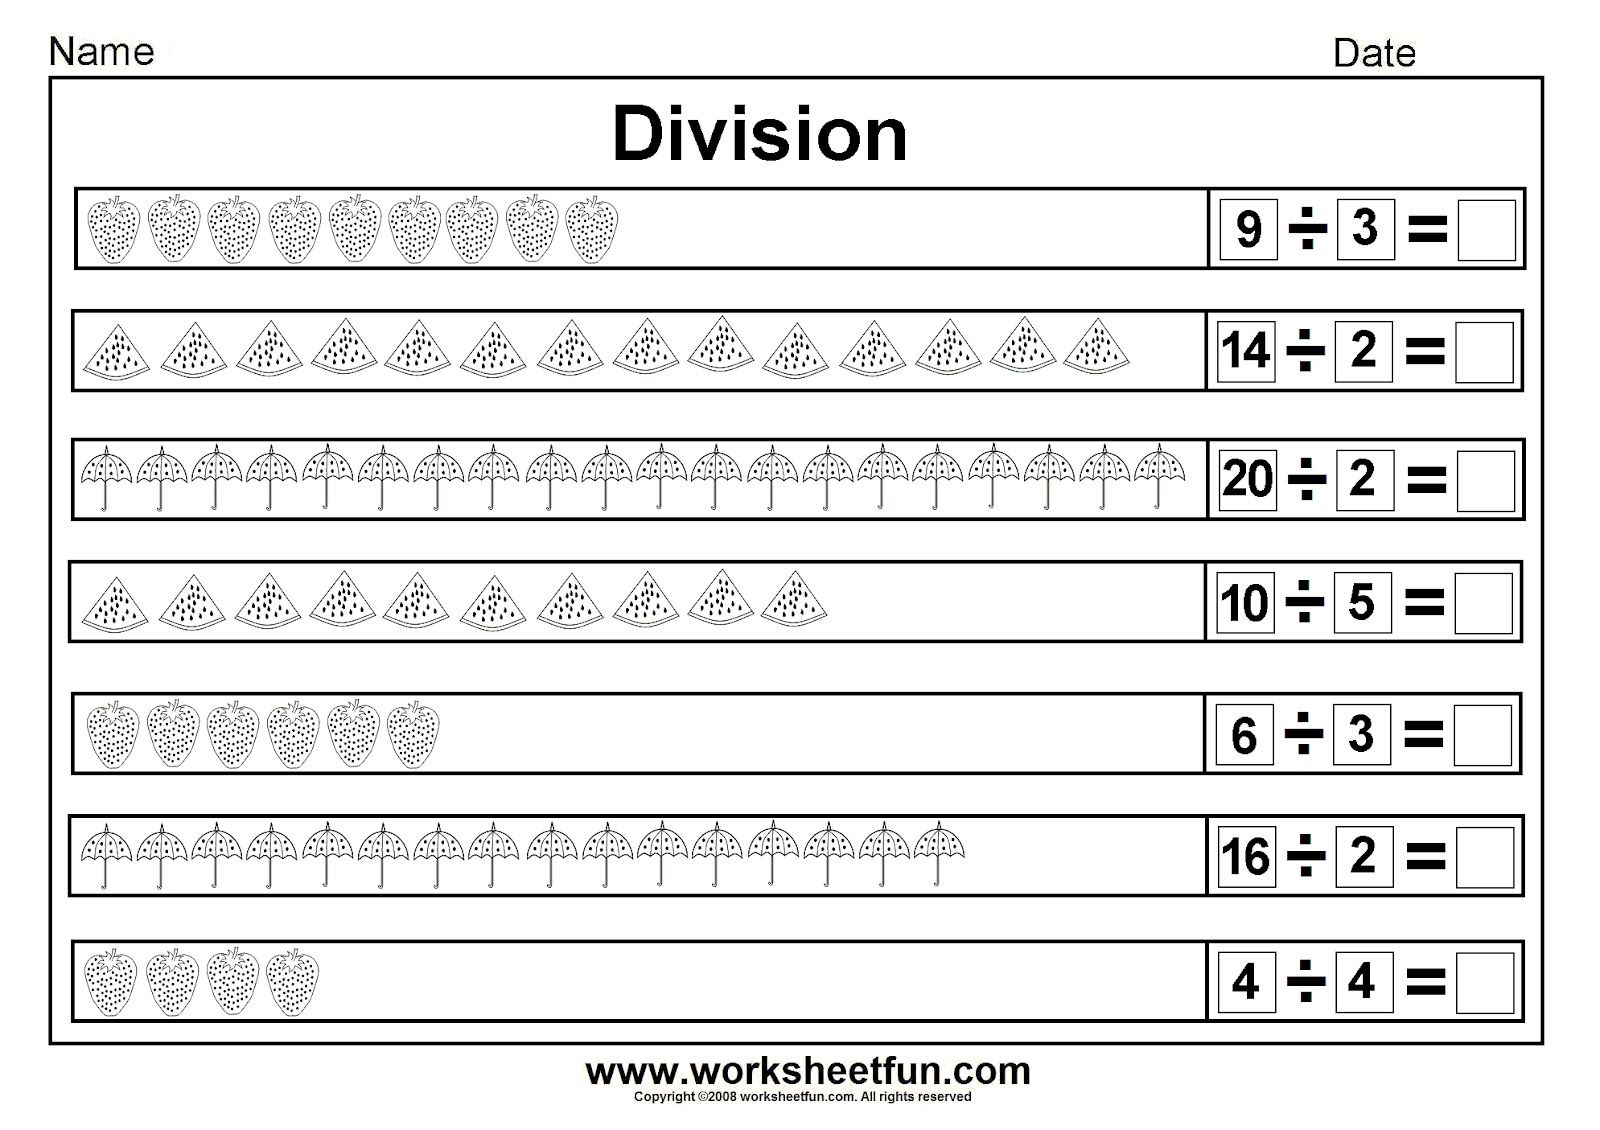 Division Worksheets Beginner Division Worksheets